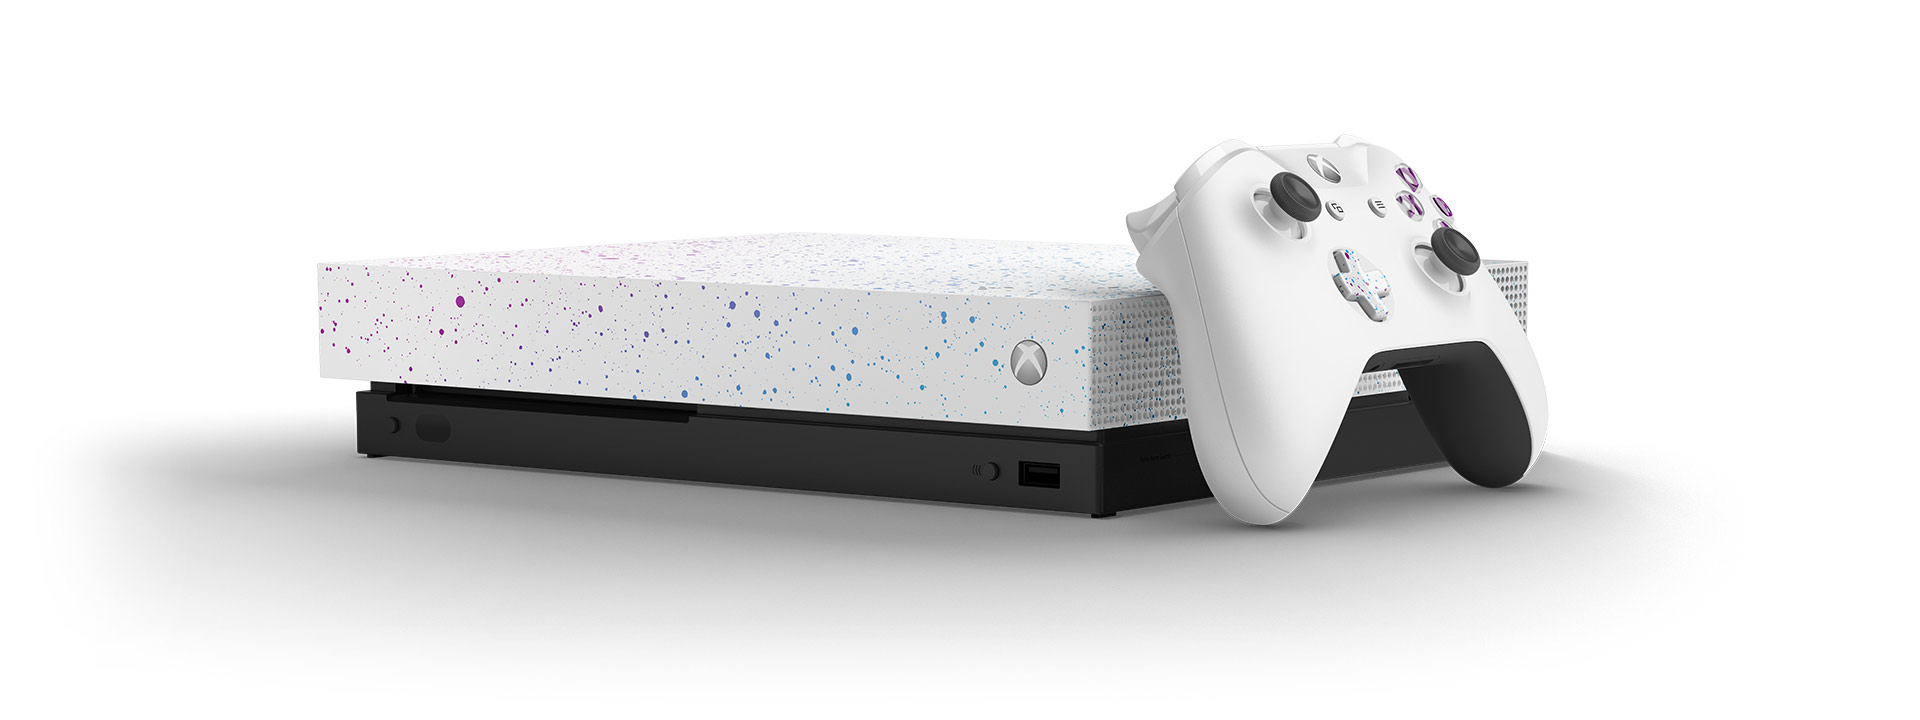 Xbox One X Hyperspace console with an Xbox wireless controller